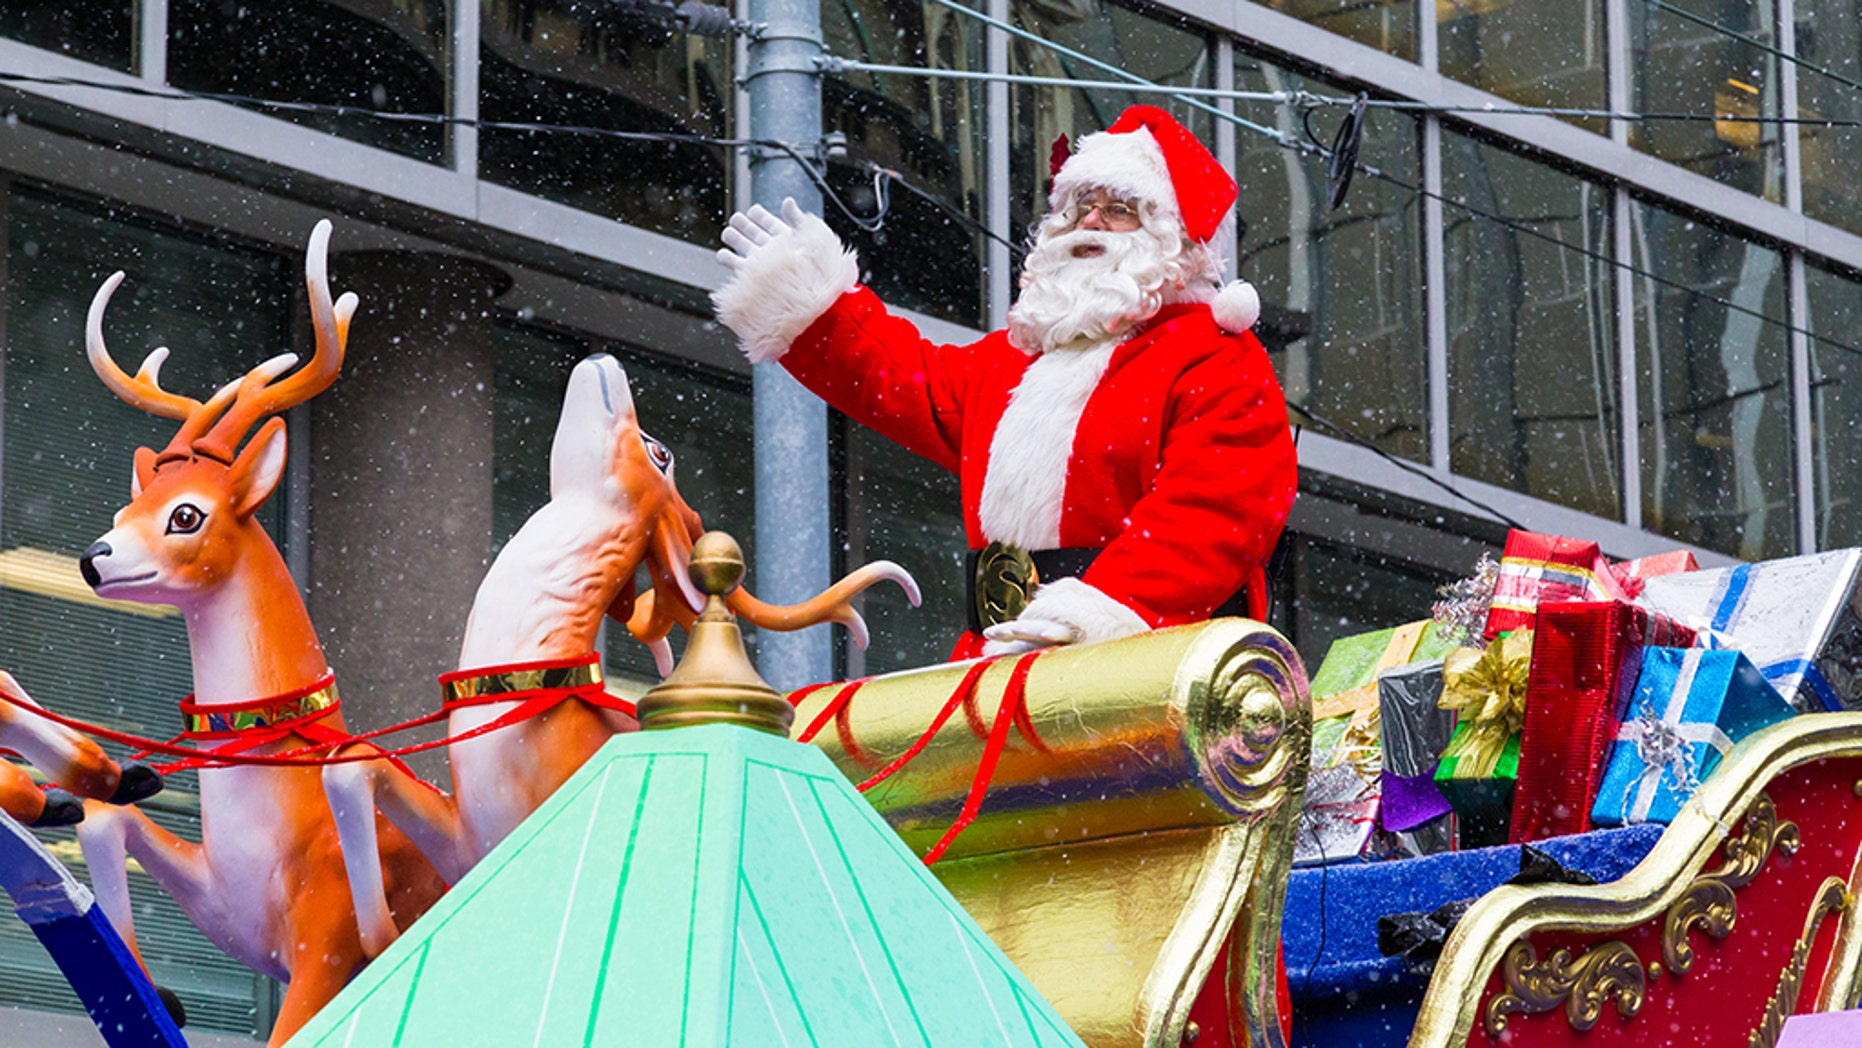 A four-year-old girl died after she fell underneath a float at a Santa Claus parade in the Canadian town of Yarmouth on Saturday.